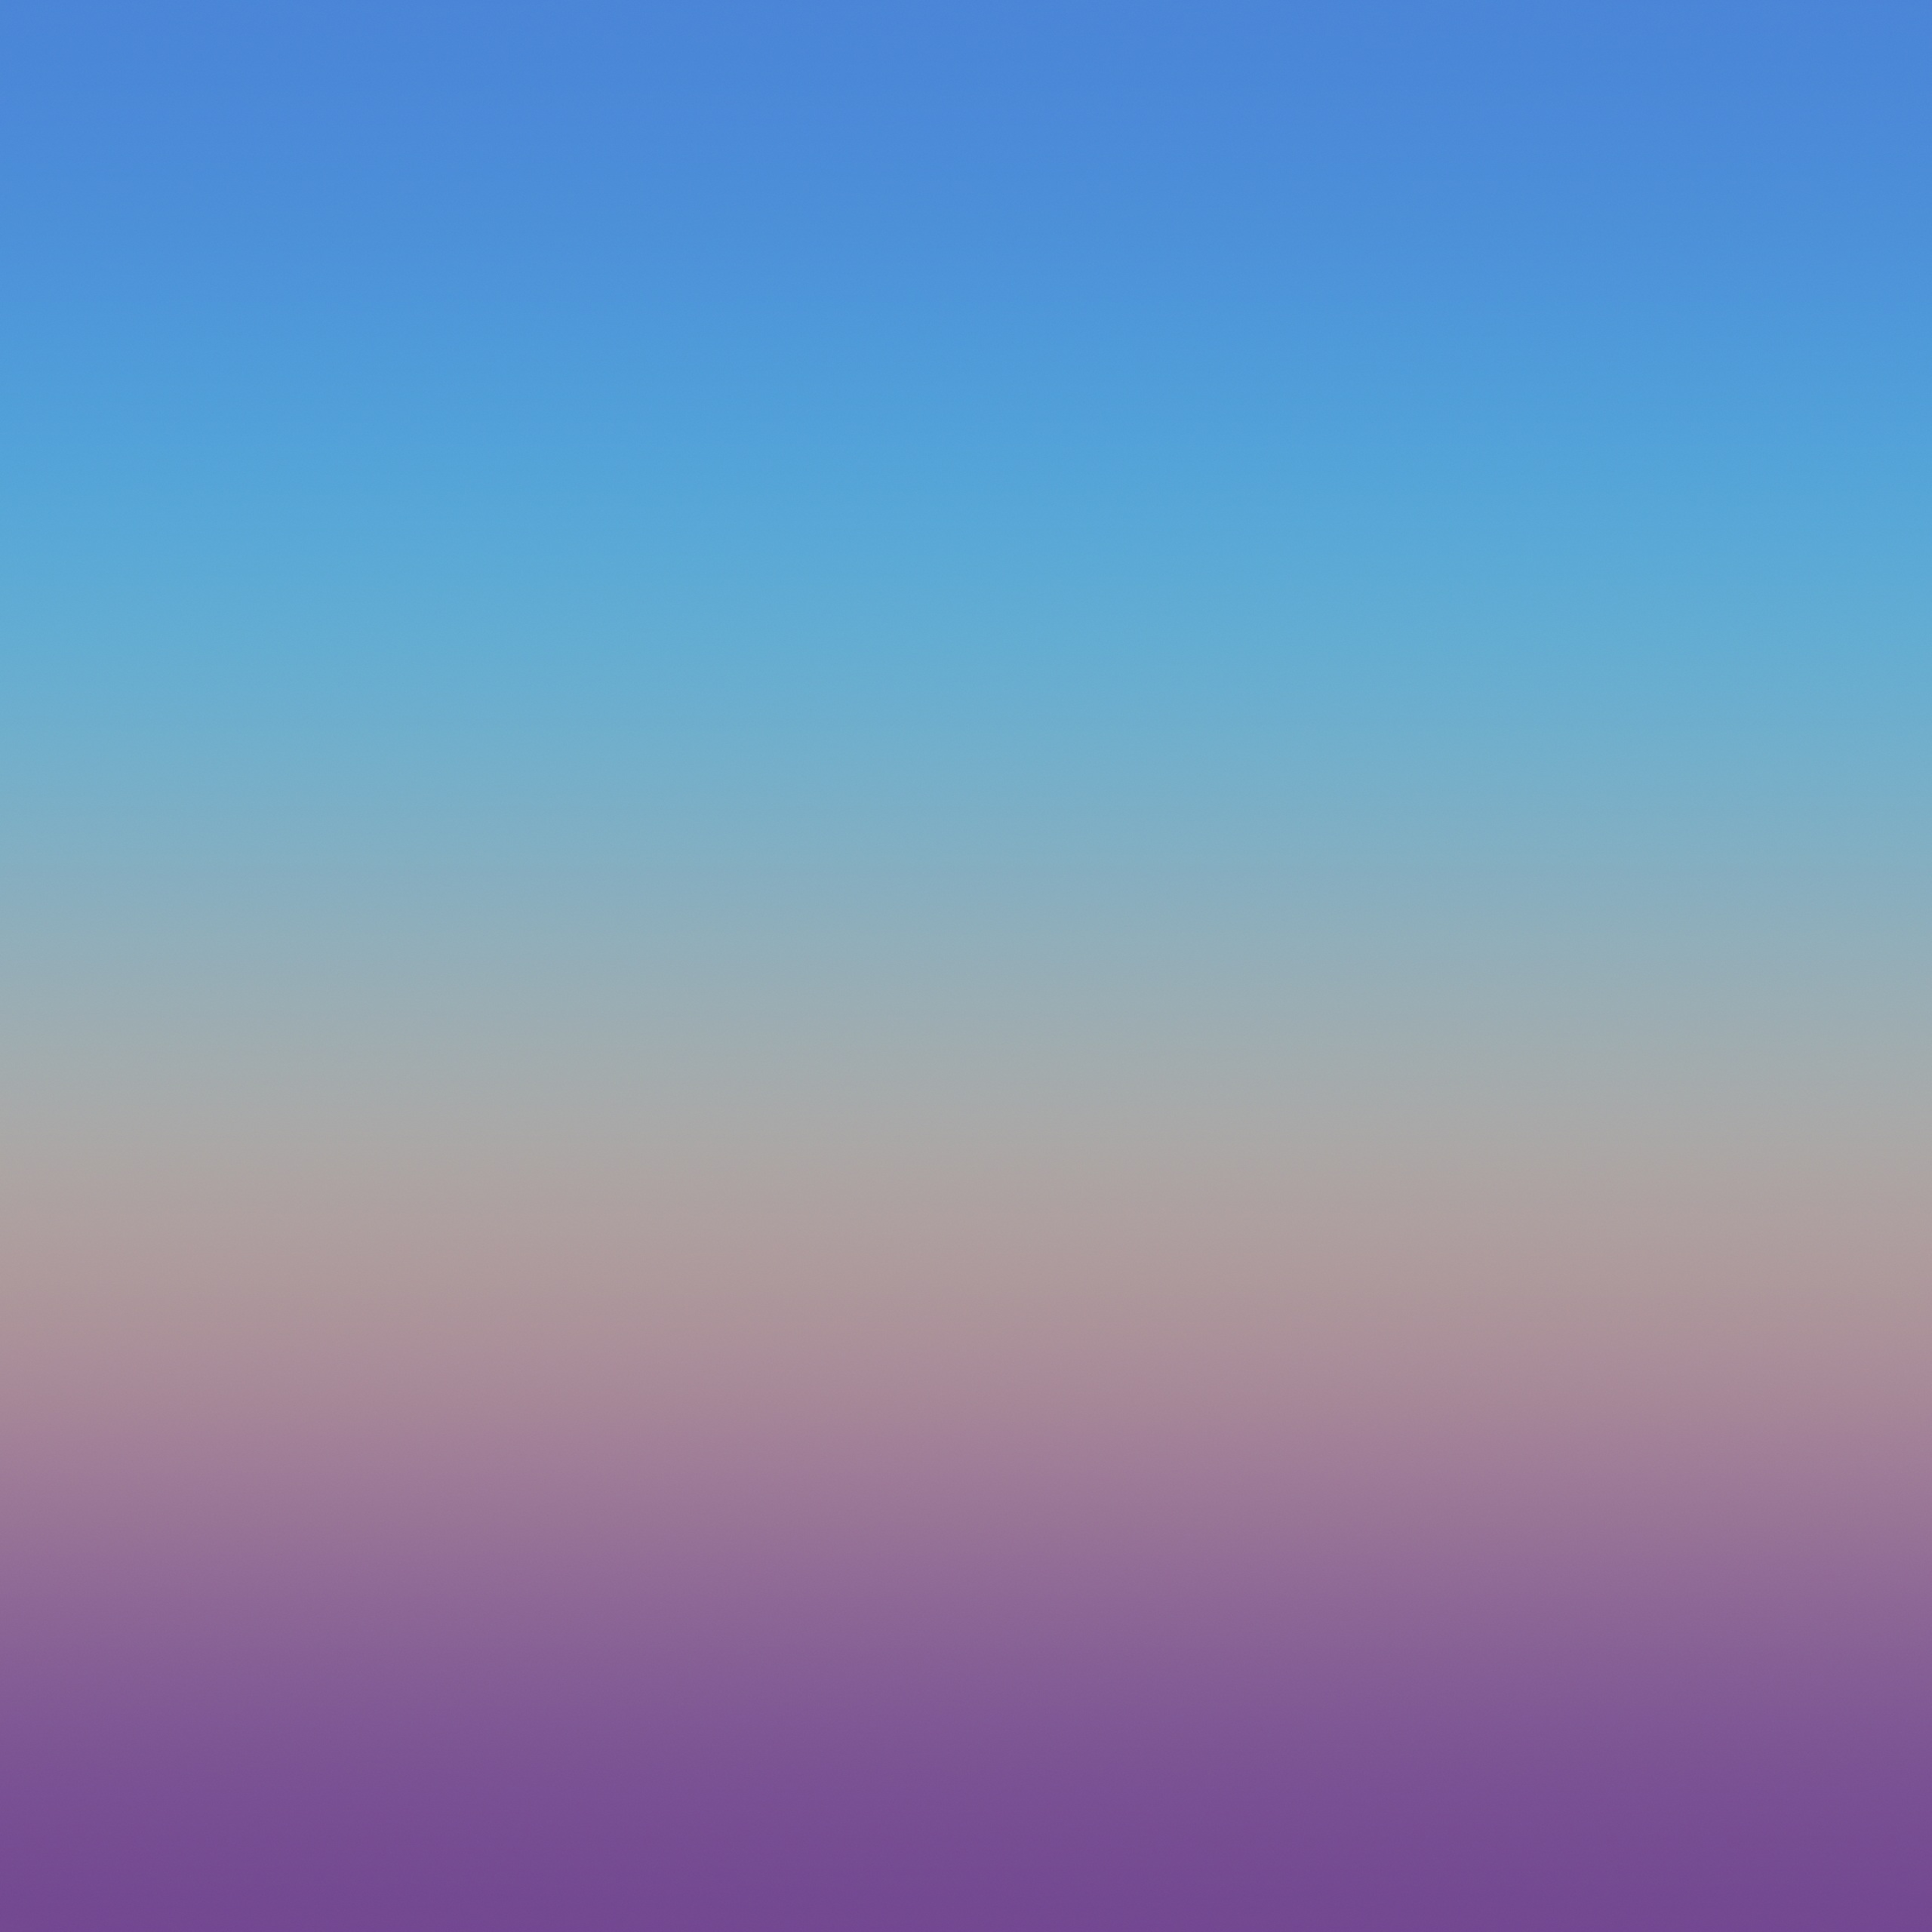 Galaxy Note 9 Simple Hd Abstract 4k Wallpapers Images